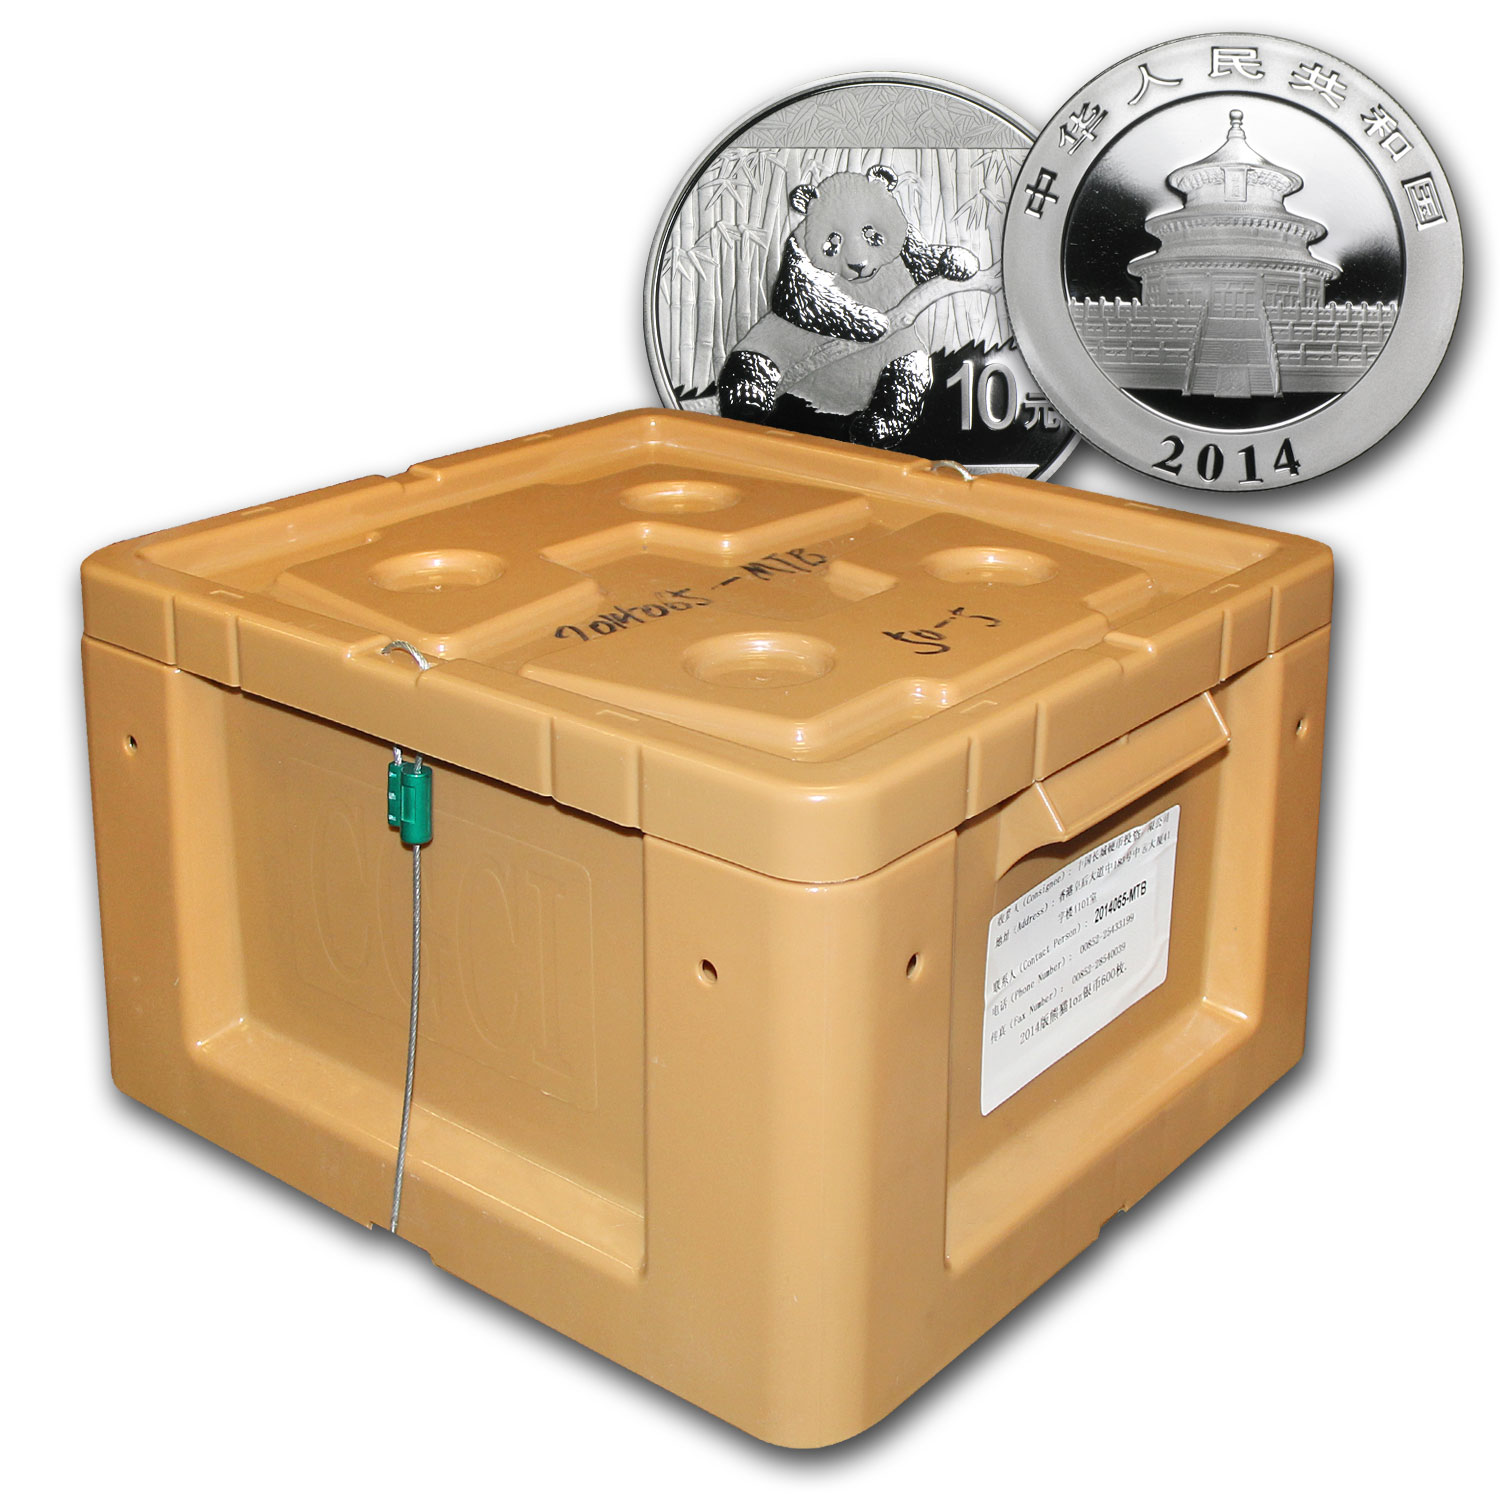 2014 1 oz Silver Chinese Panda 600-Coin Monster Box Sealed Aug 1